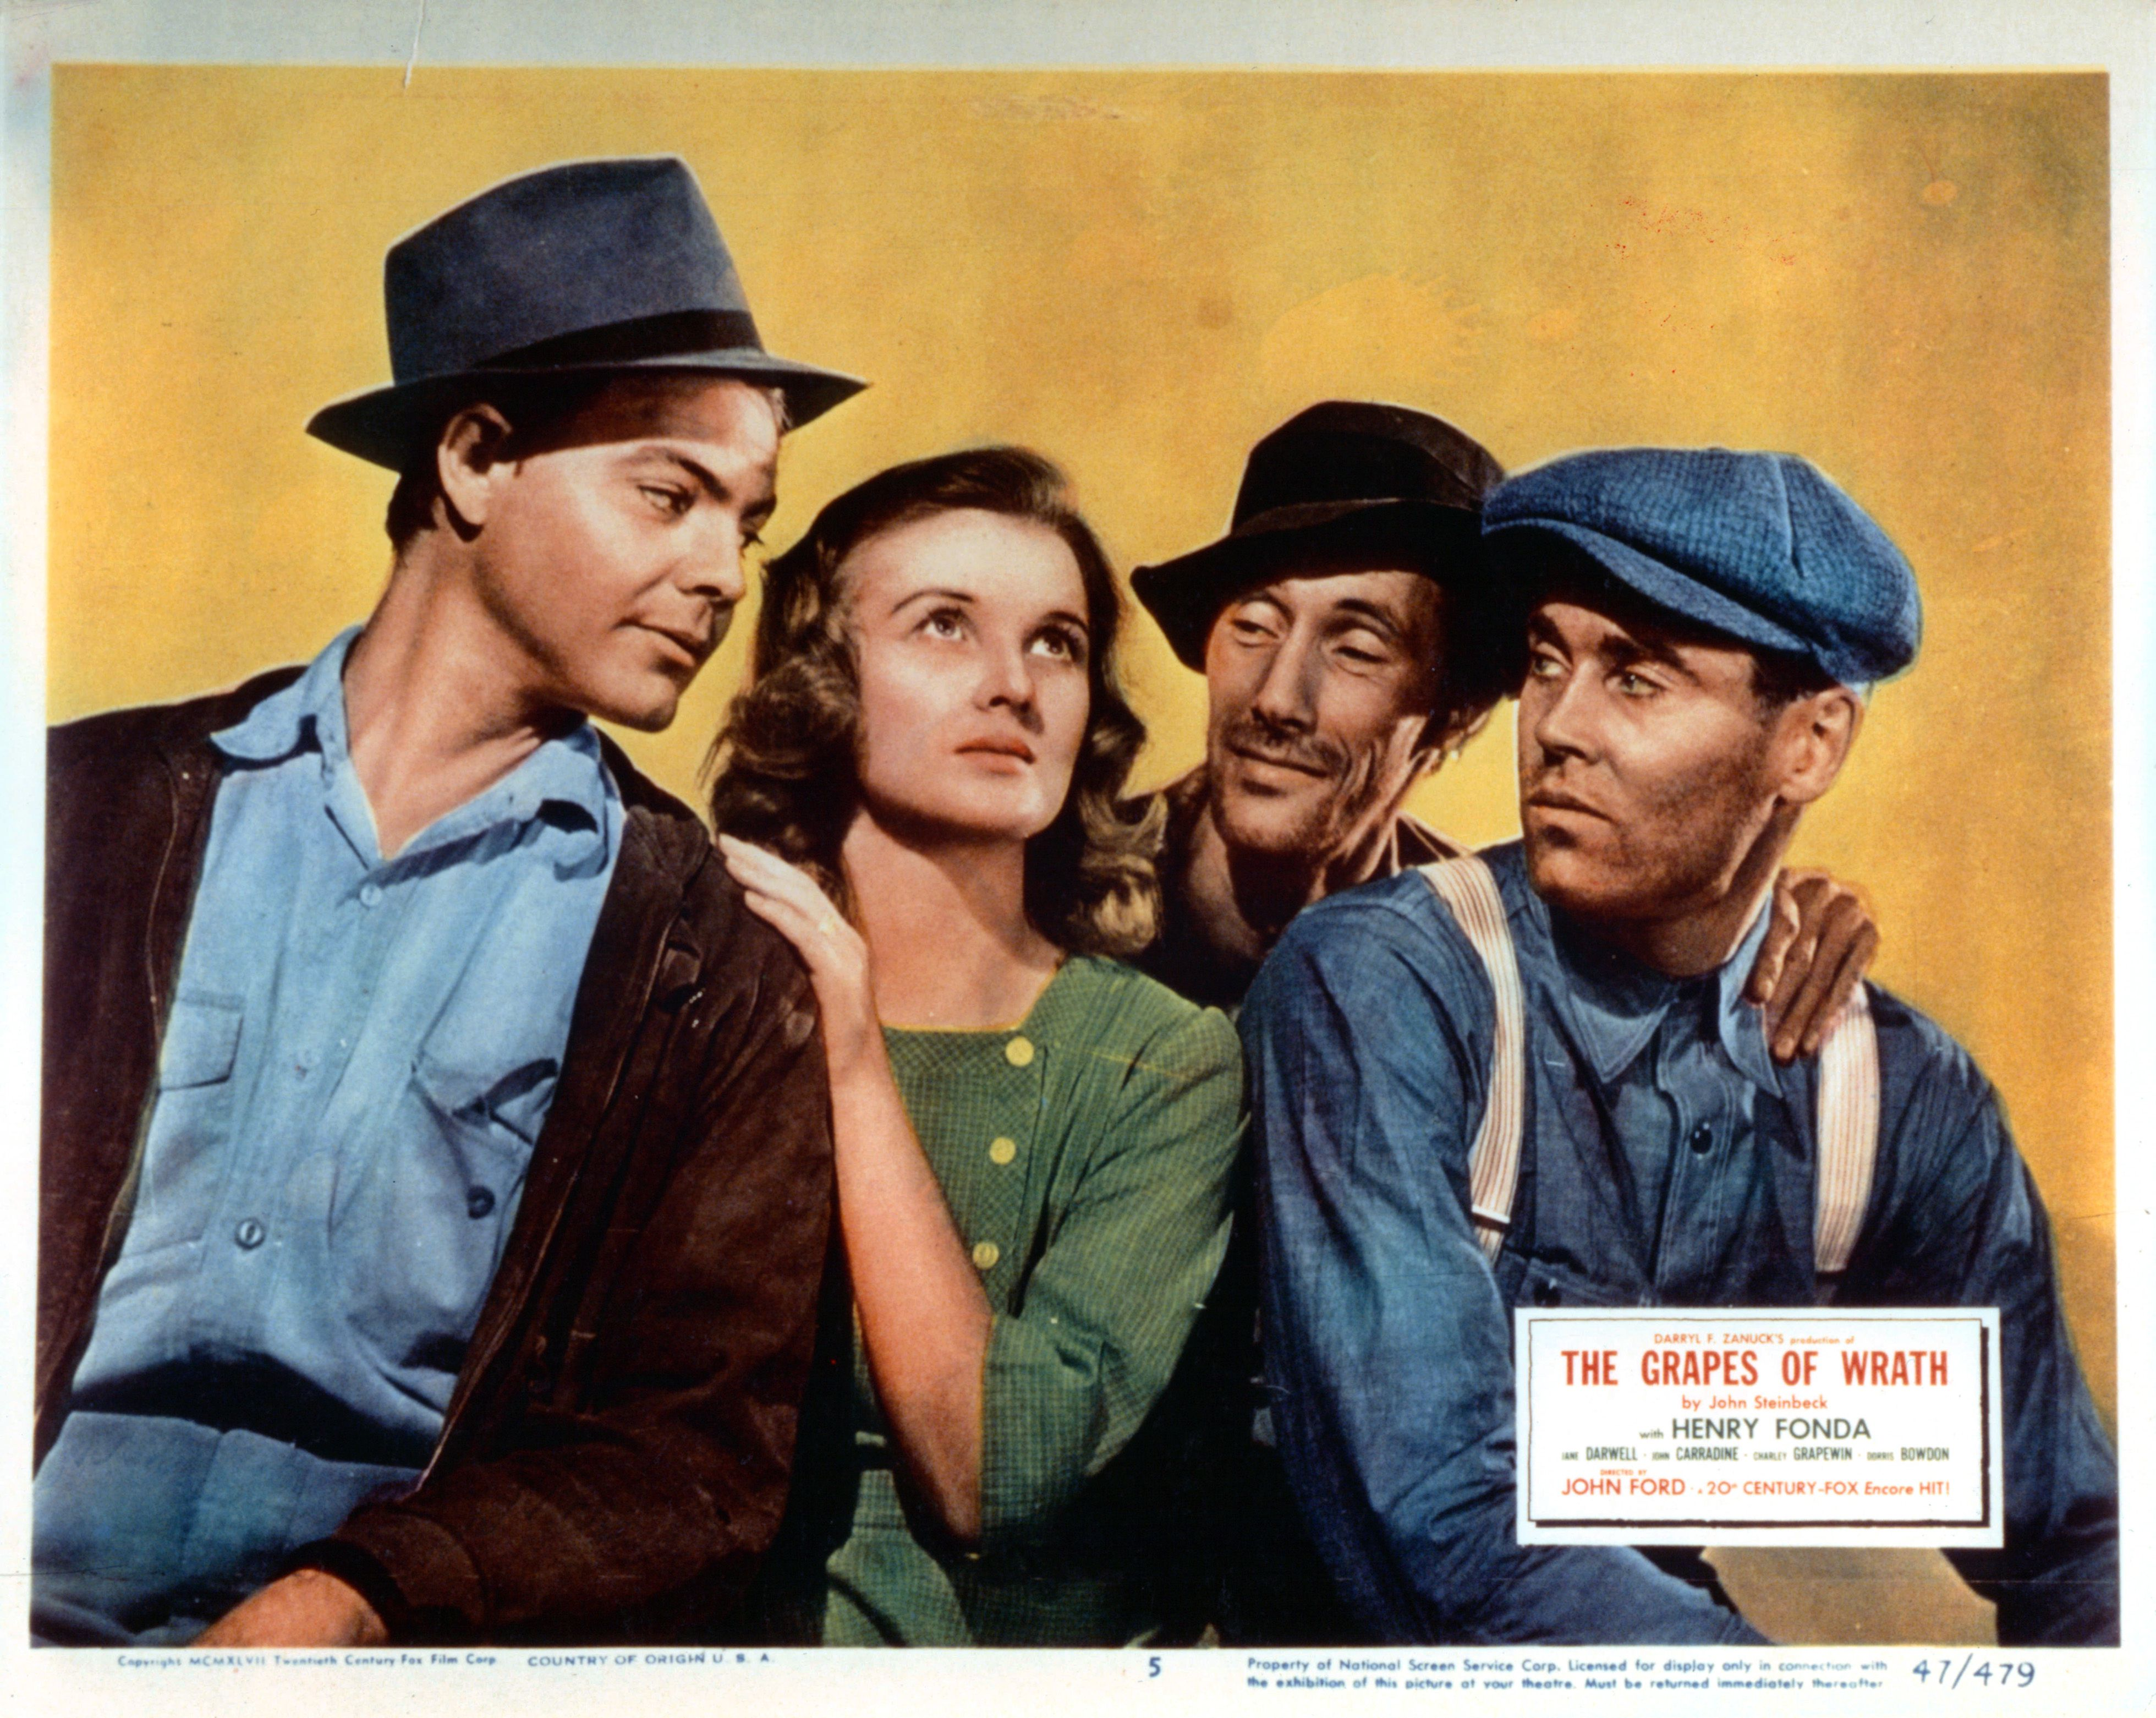 John Carradine And Henry Fonda In 'The Grapes Of Wrath'